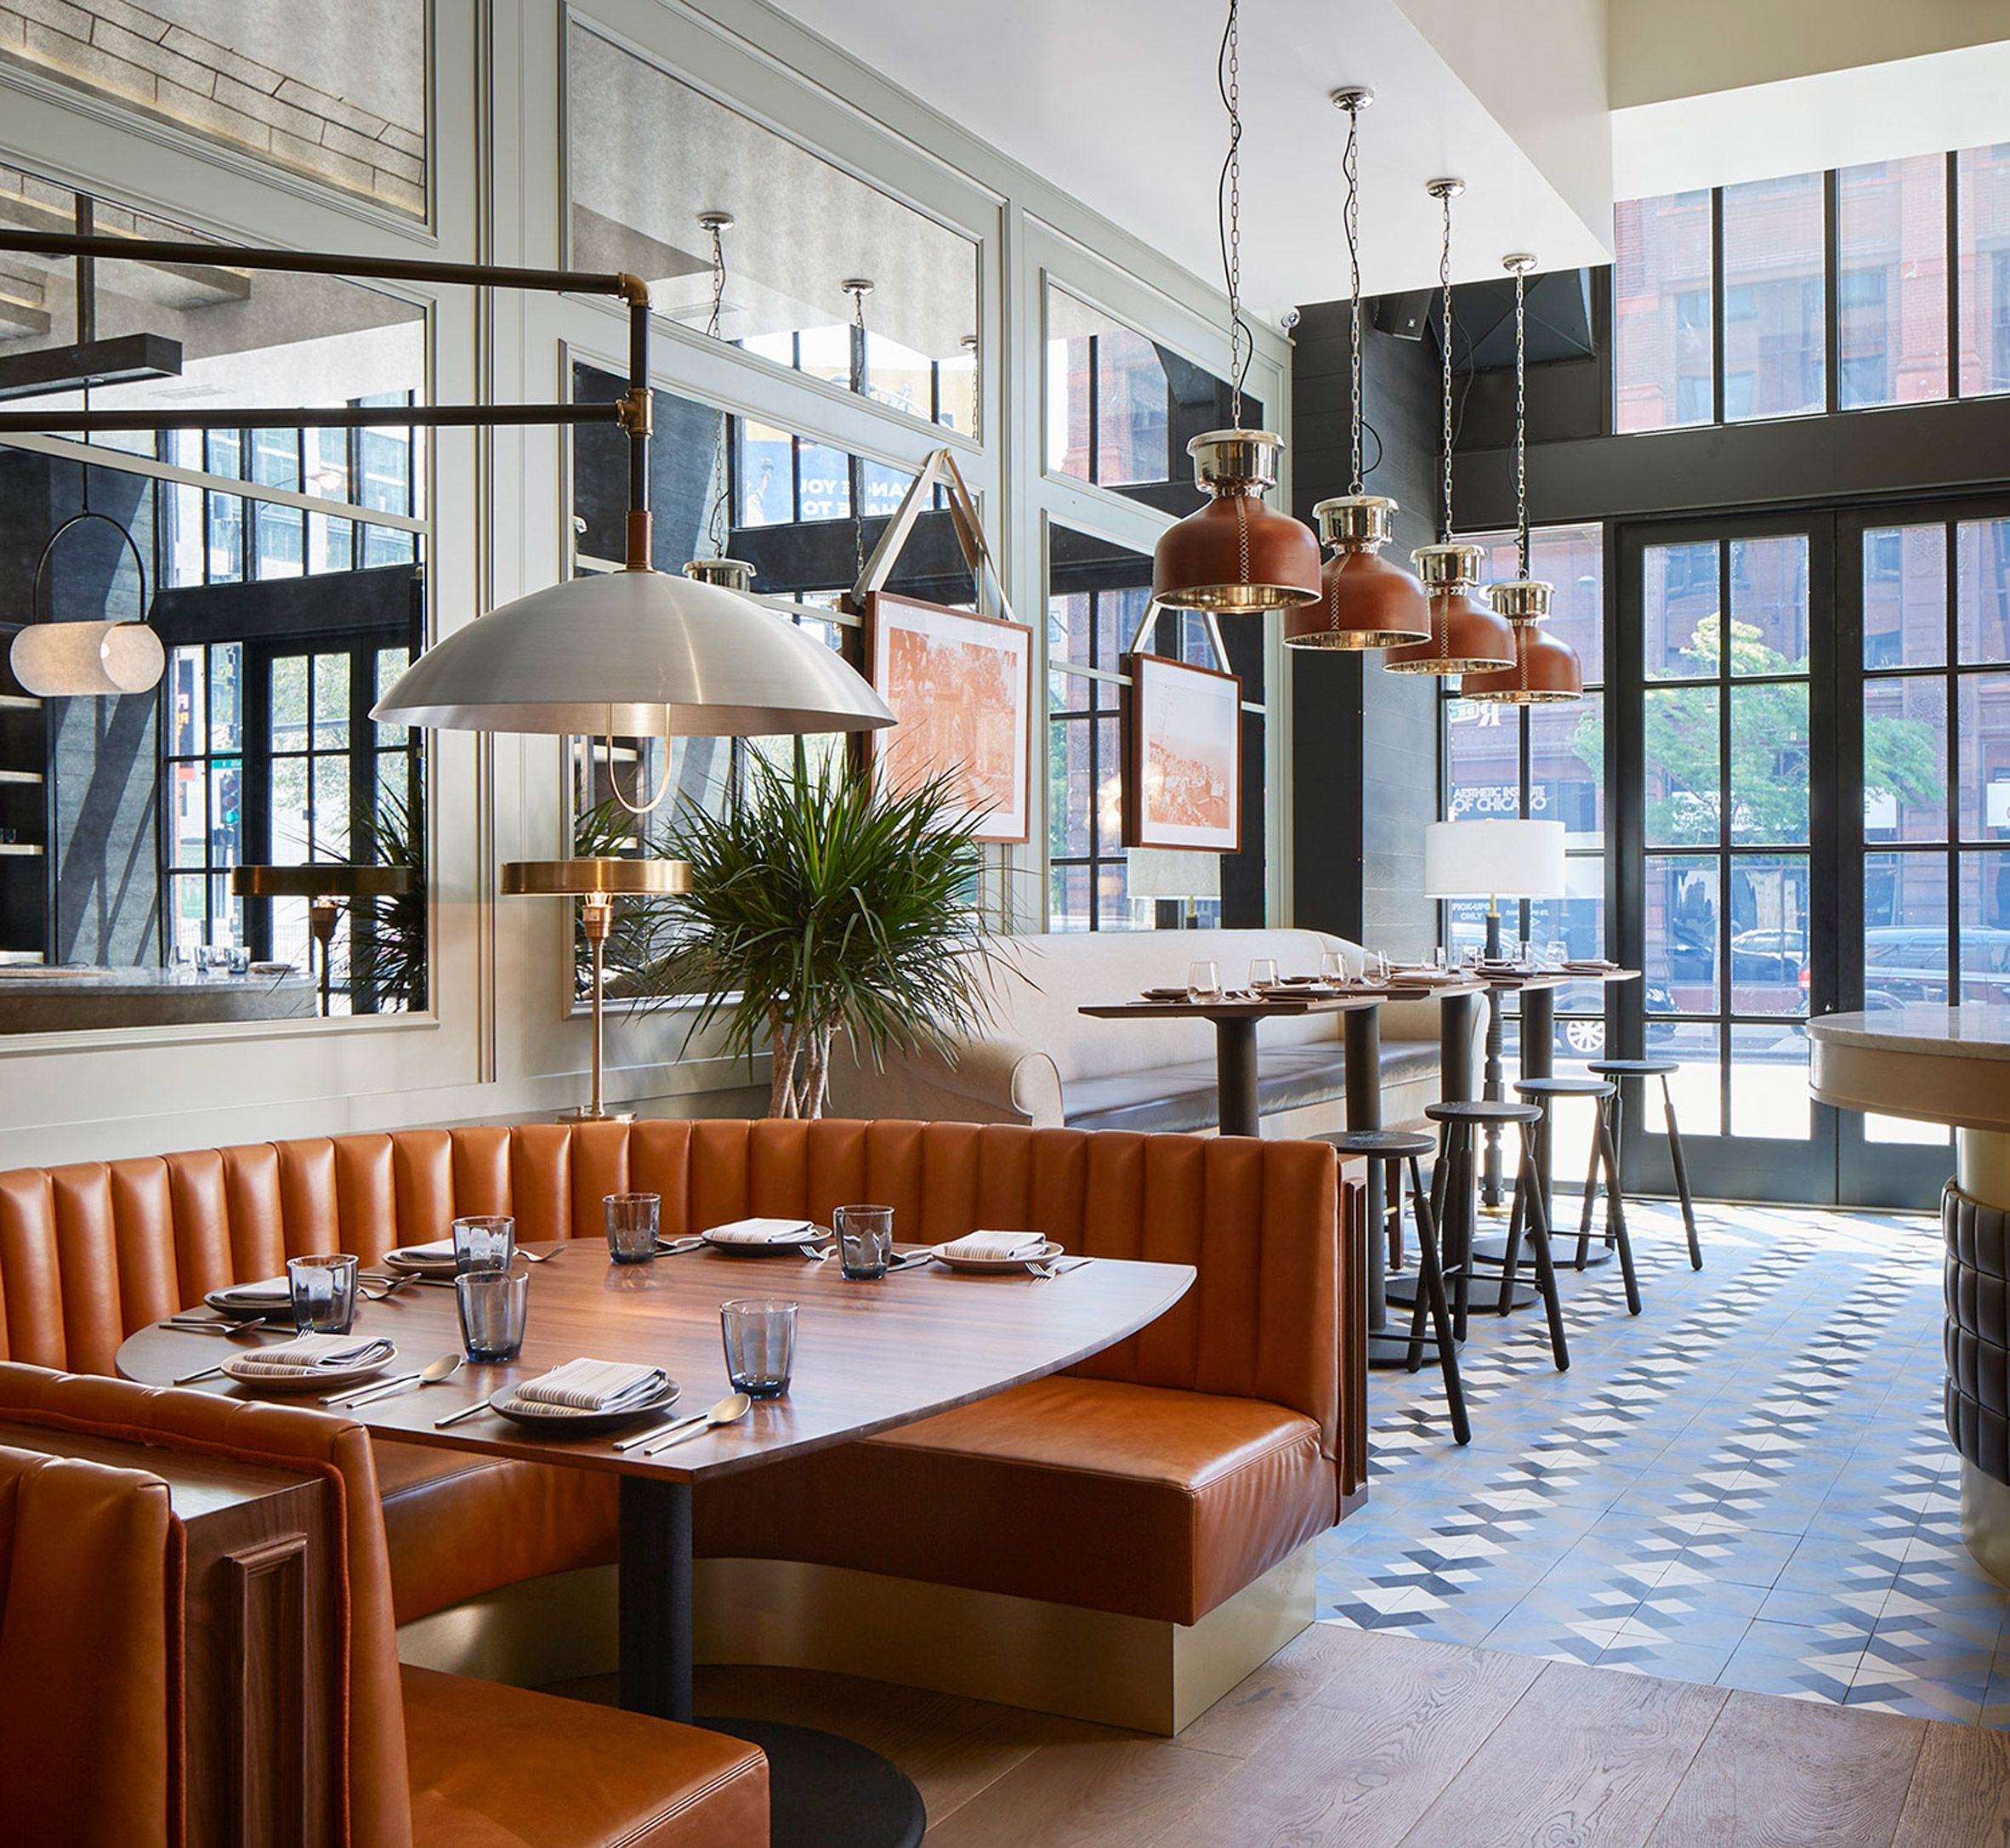 The Proxi restaurant occupies former printing house in Chicago ...